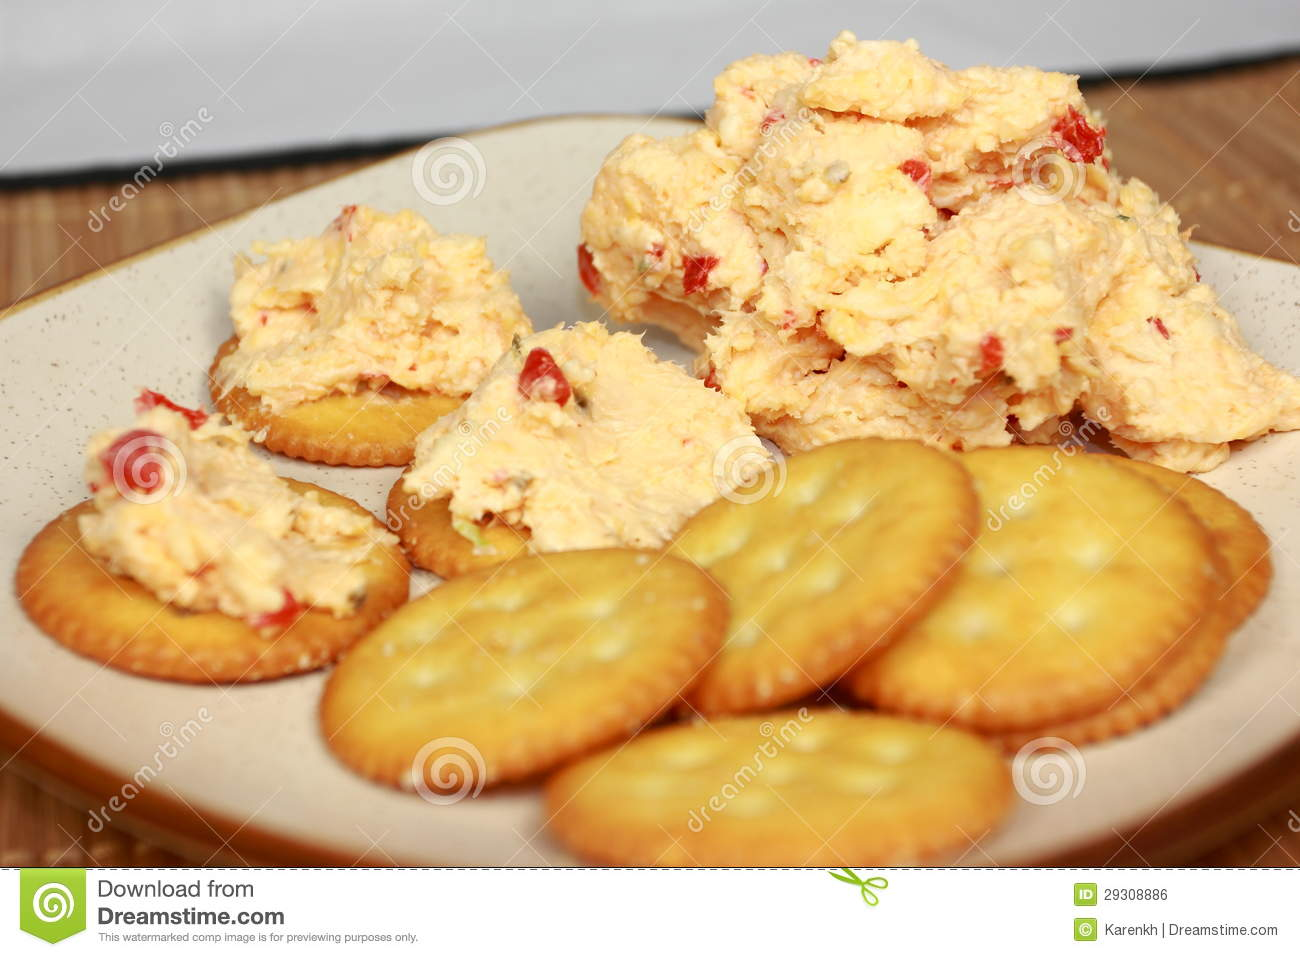 ... tasty homemade pimento cheese spread served on crisp round crackers